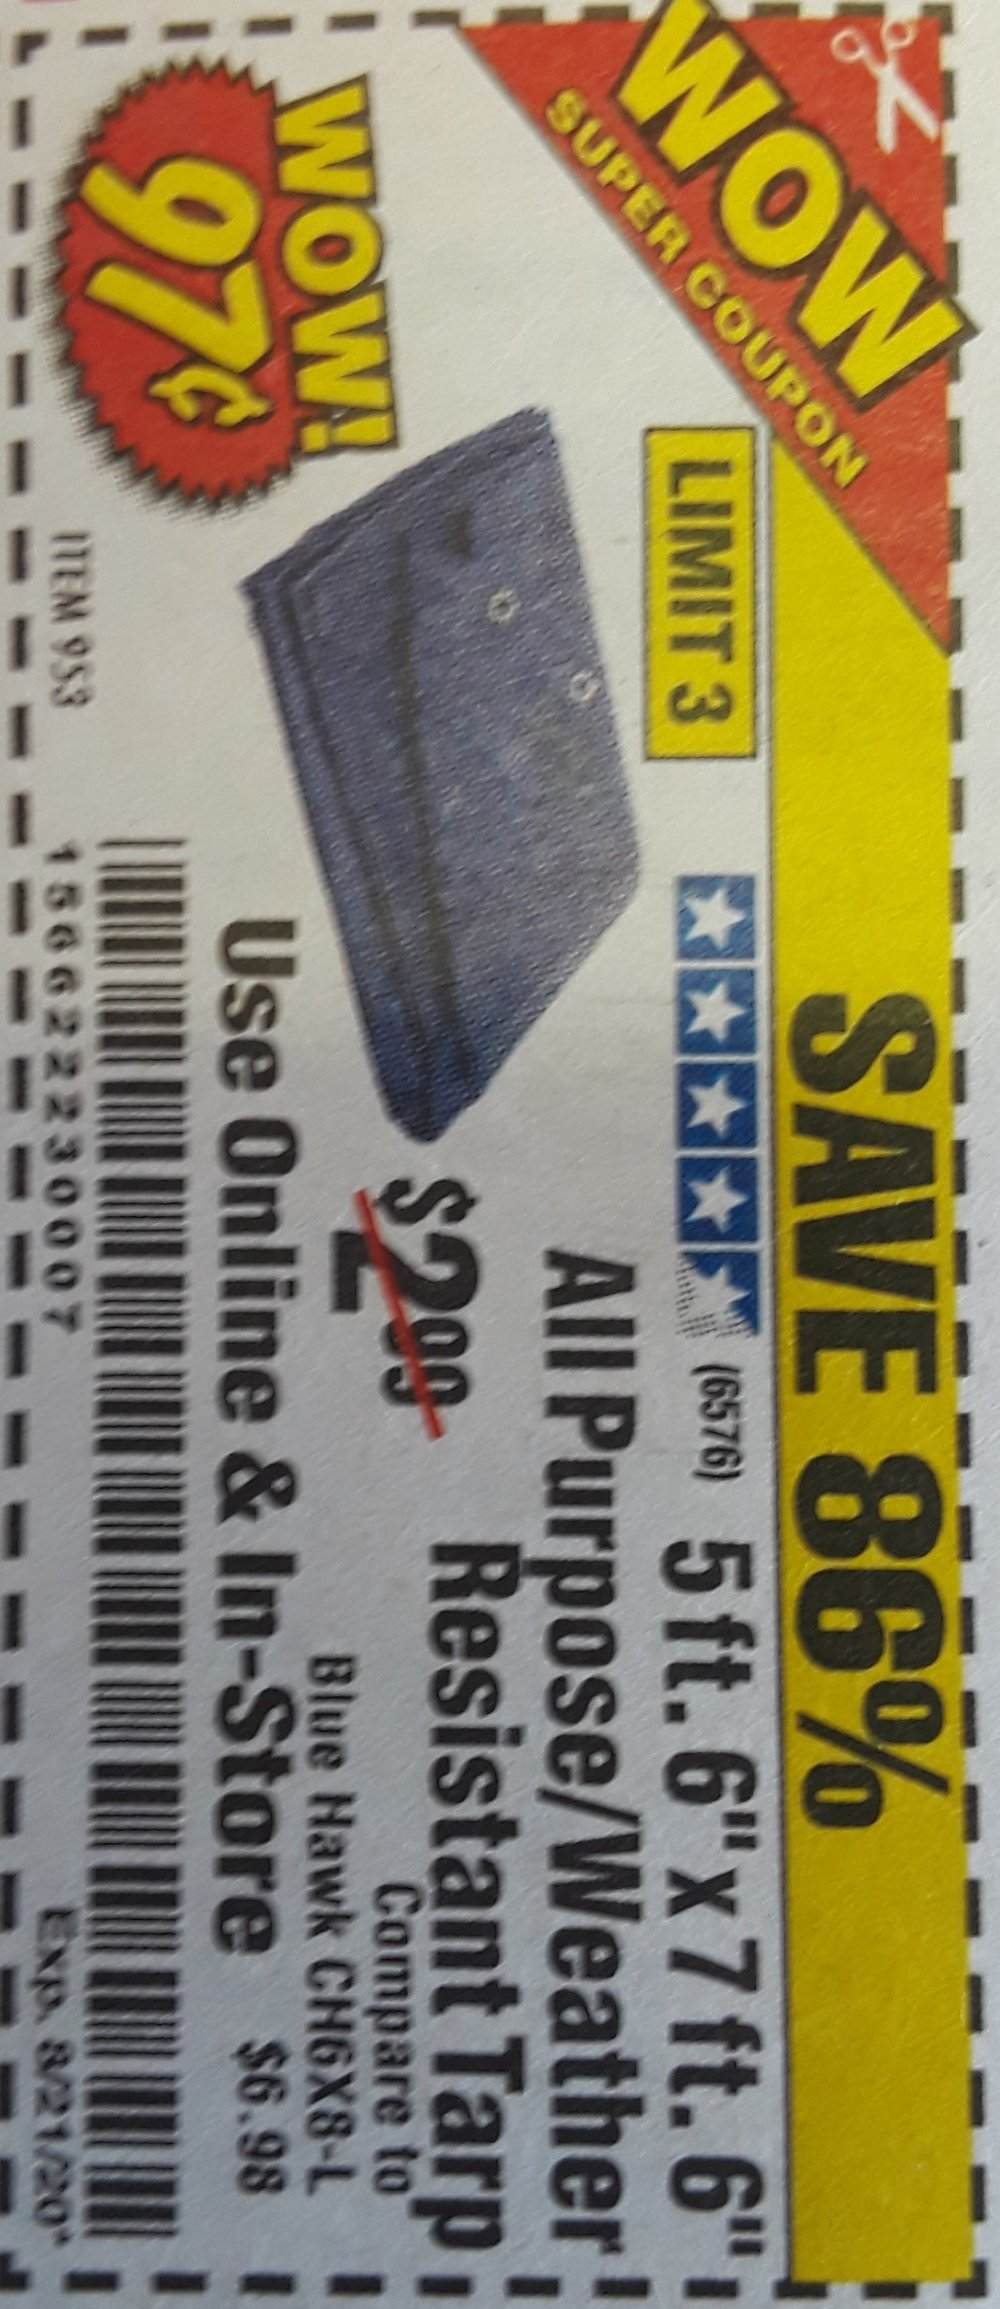 Harbor Freight Coupon, HF Coupons - 86% off